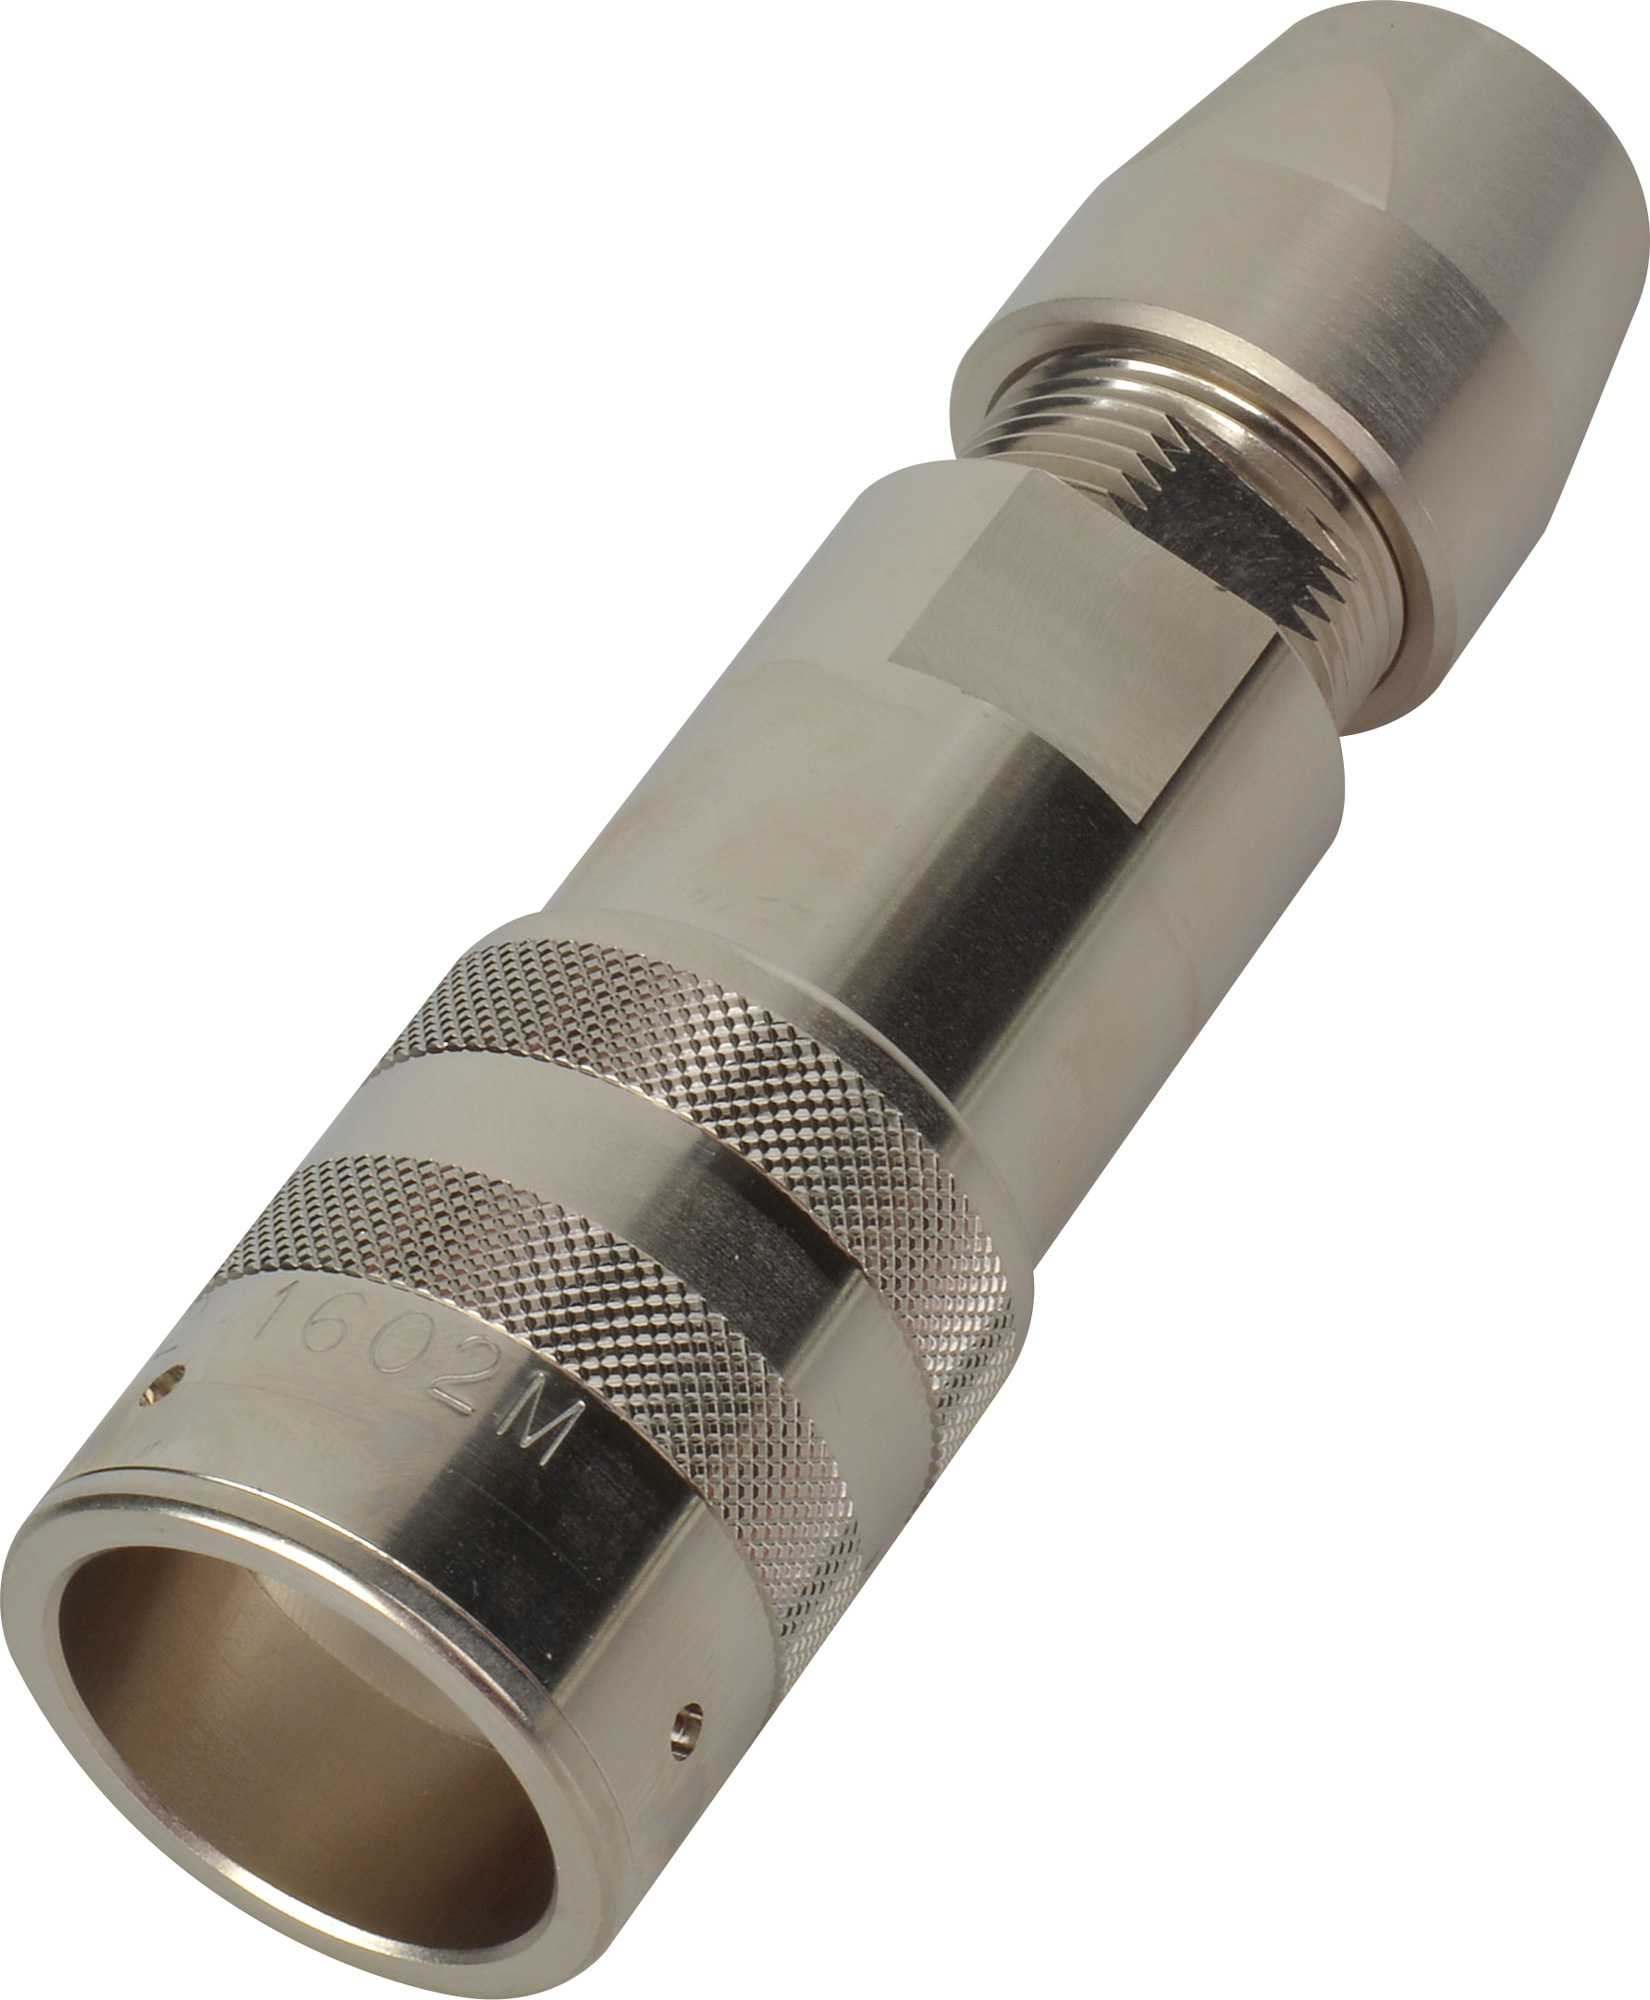 Kings 7703-2 Tri-Loc Female Cable End for Belden 9267 and 1857A